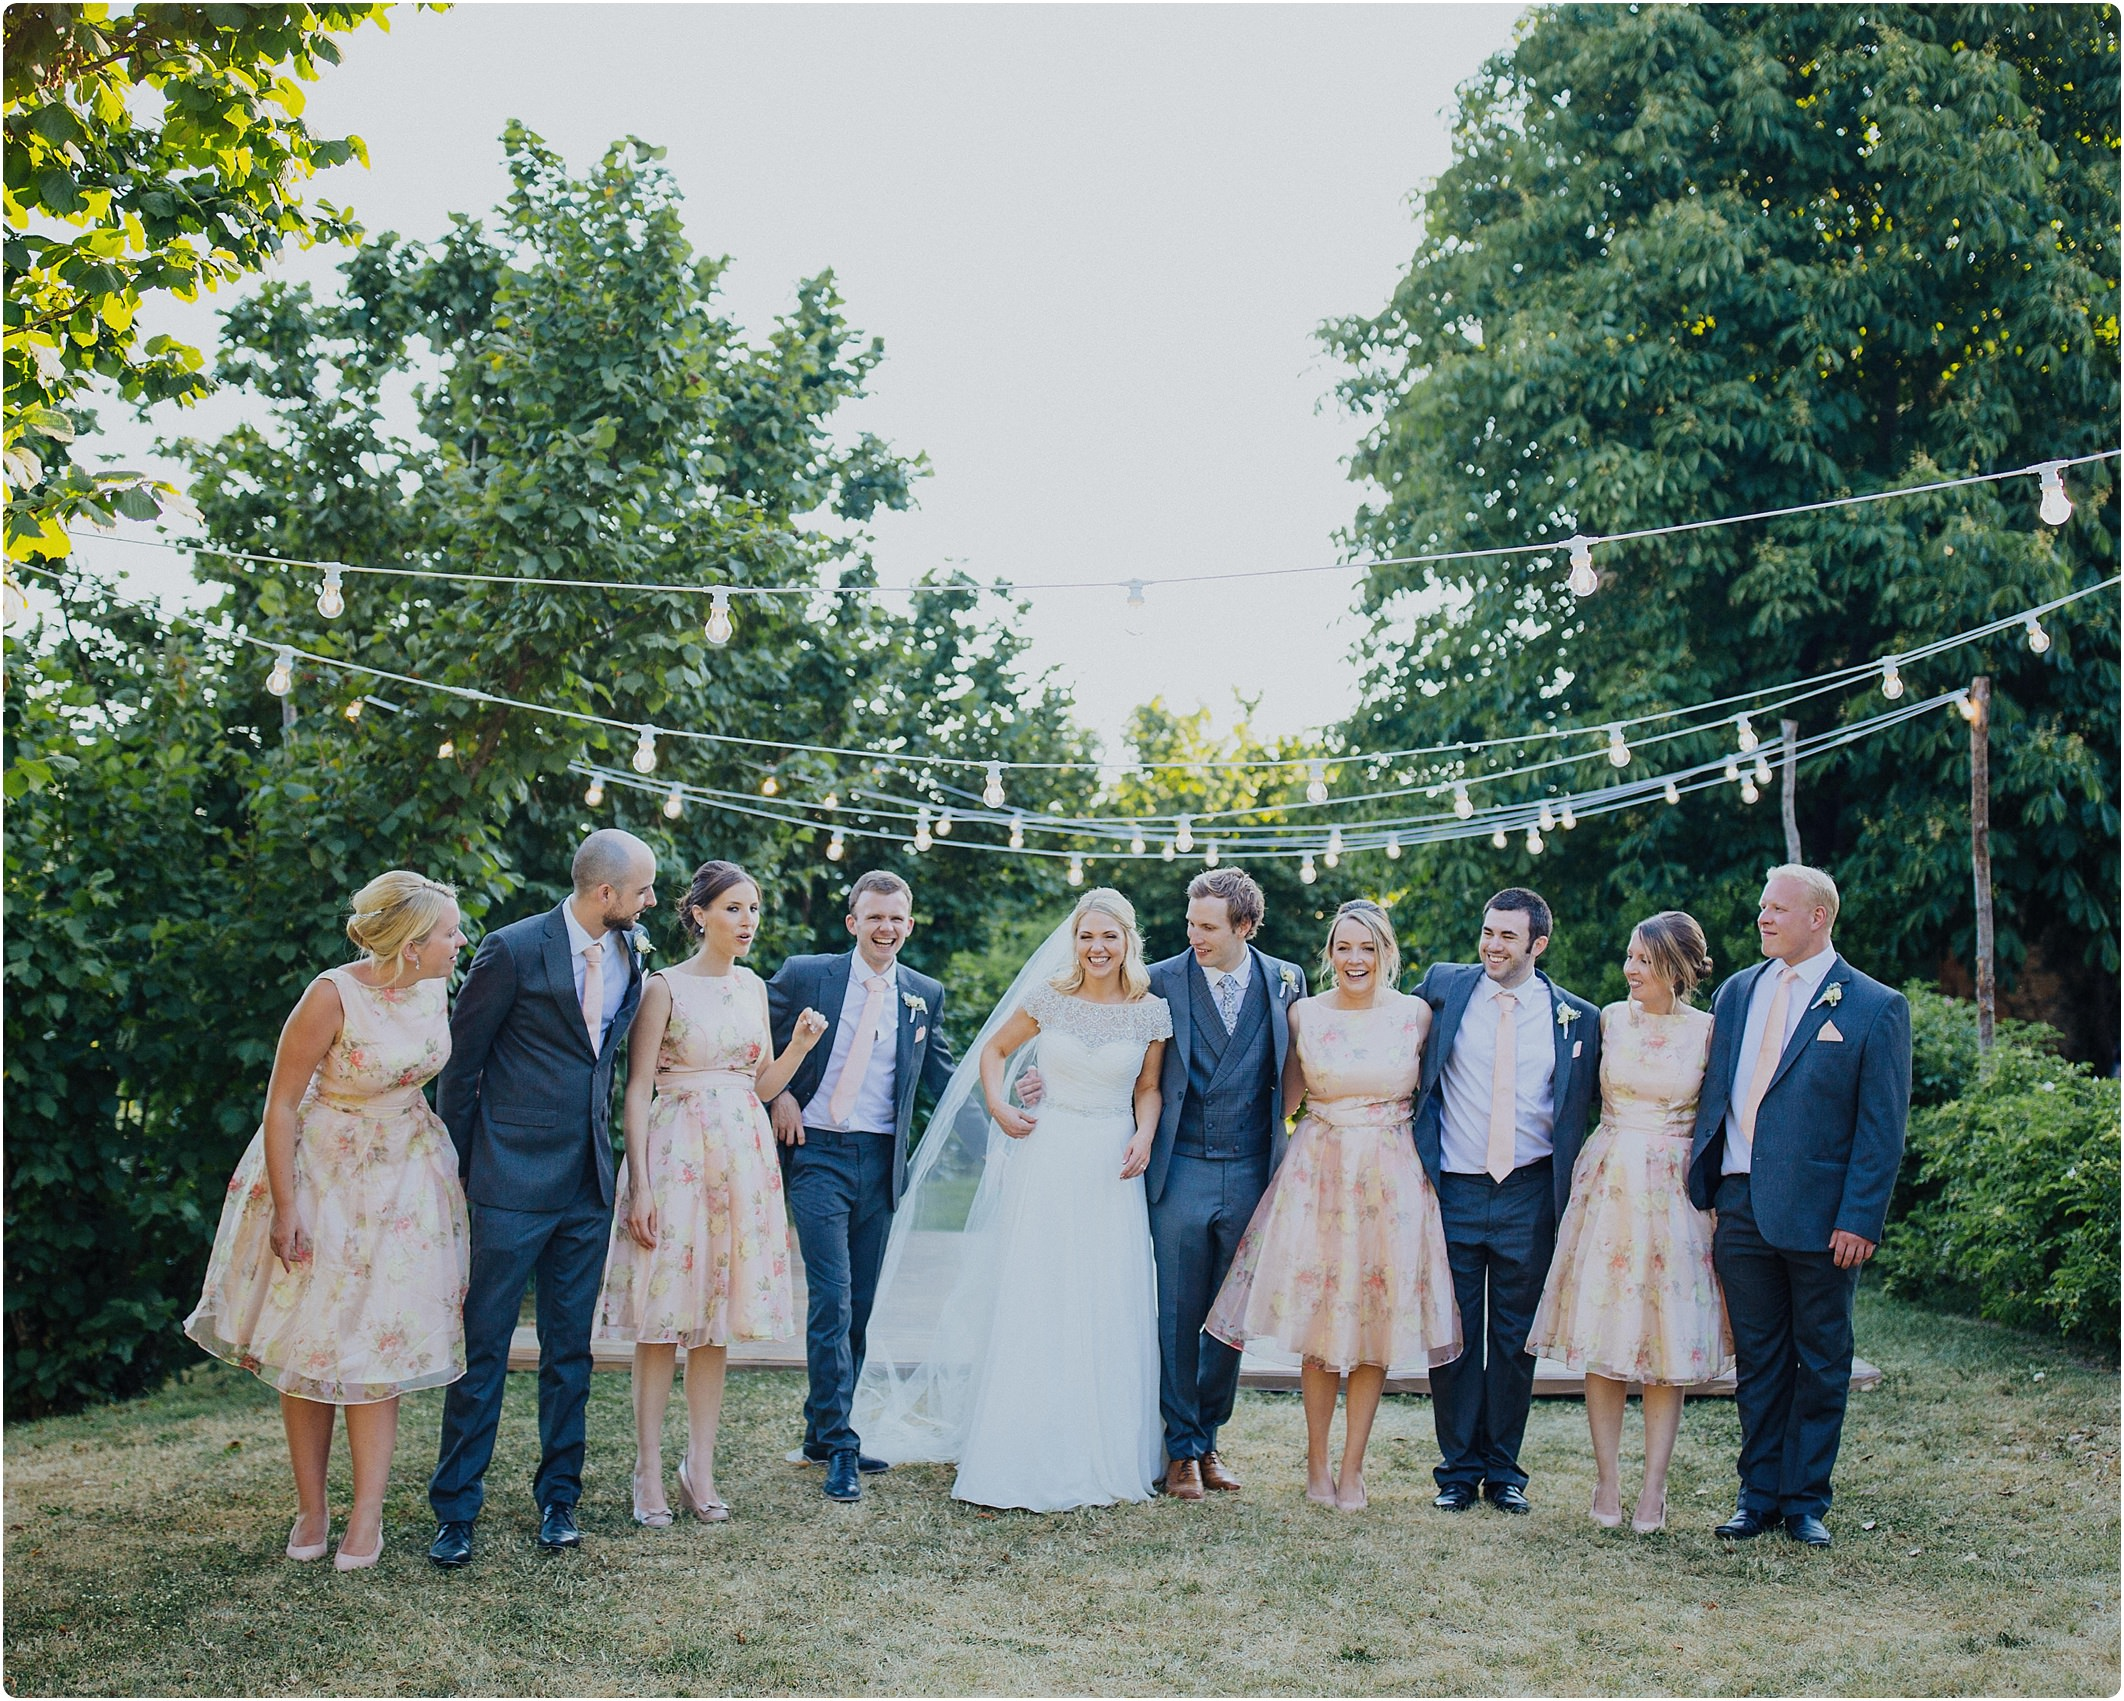 bridal party together at a villa podernovo wedding